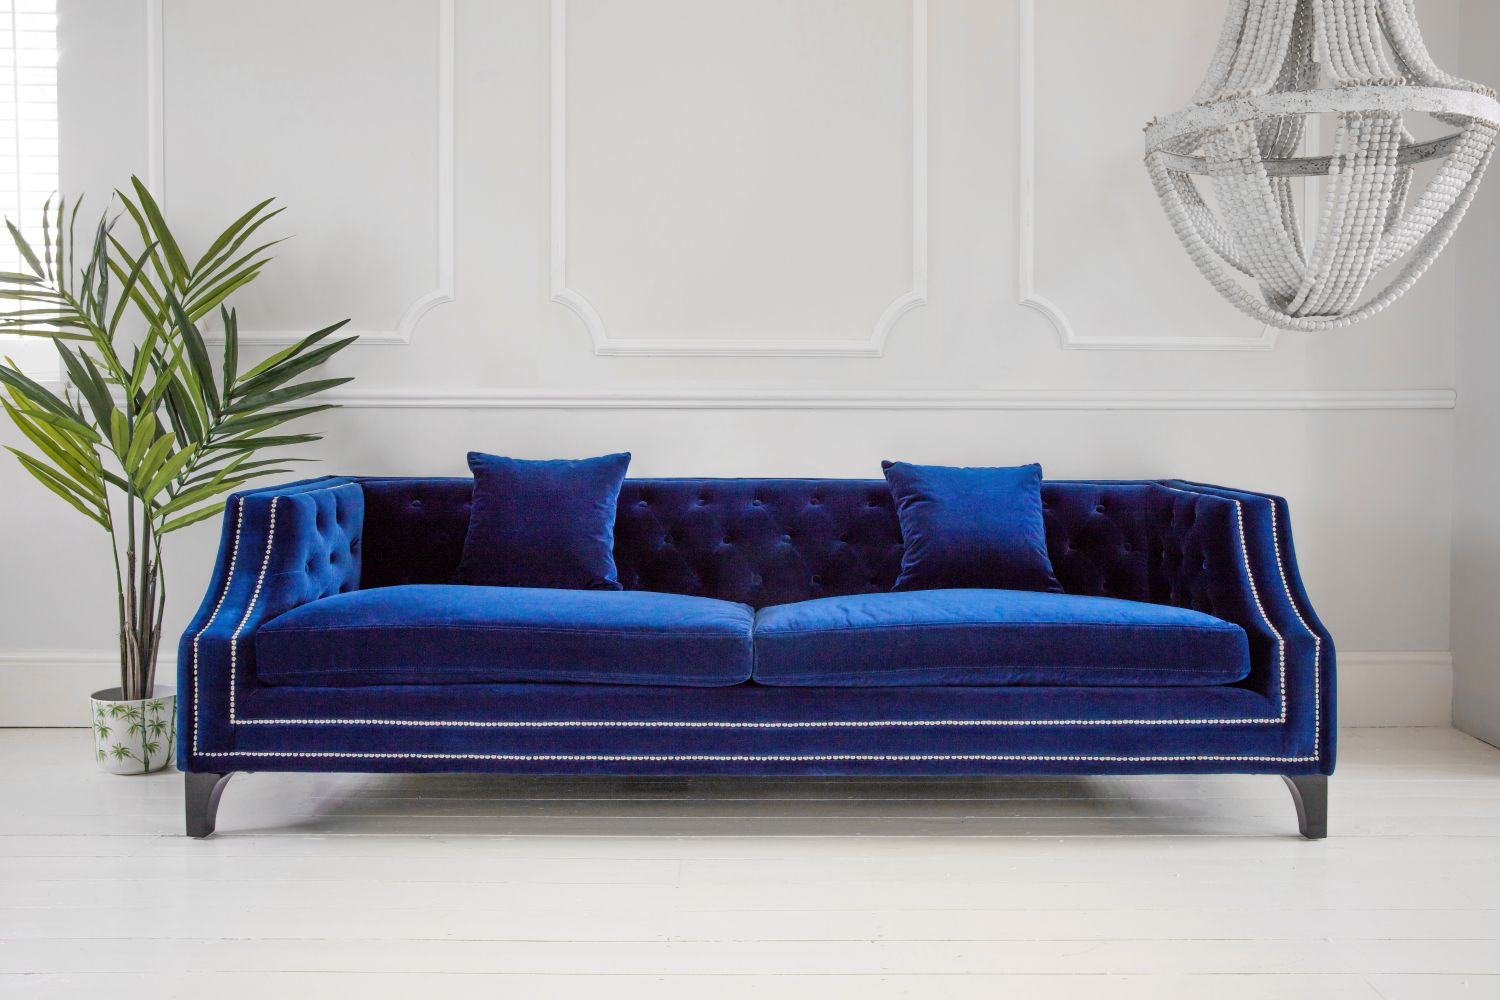 9the-french-bedroom-co_imperial-sofa-lifestyle.jpg